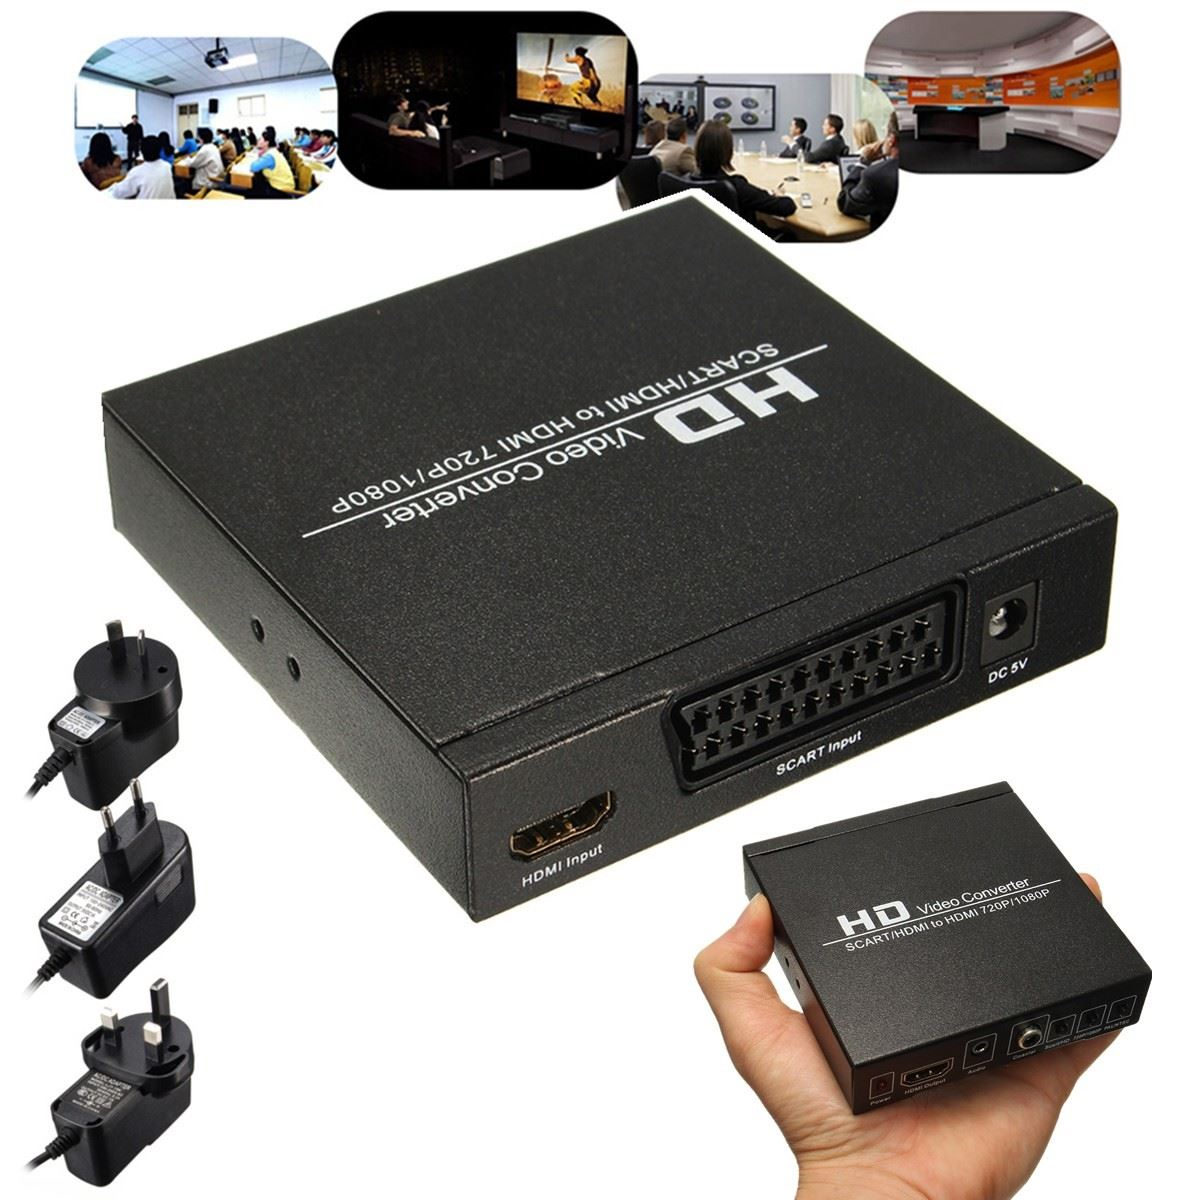 scart hdmi to hdmi converter full hd 1080p digital video converter adapter eu ebay. Black Bedroom Furniture Sets. Home Design Ideas